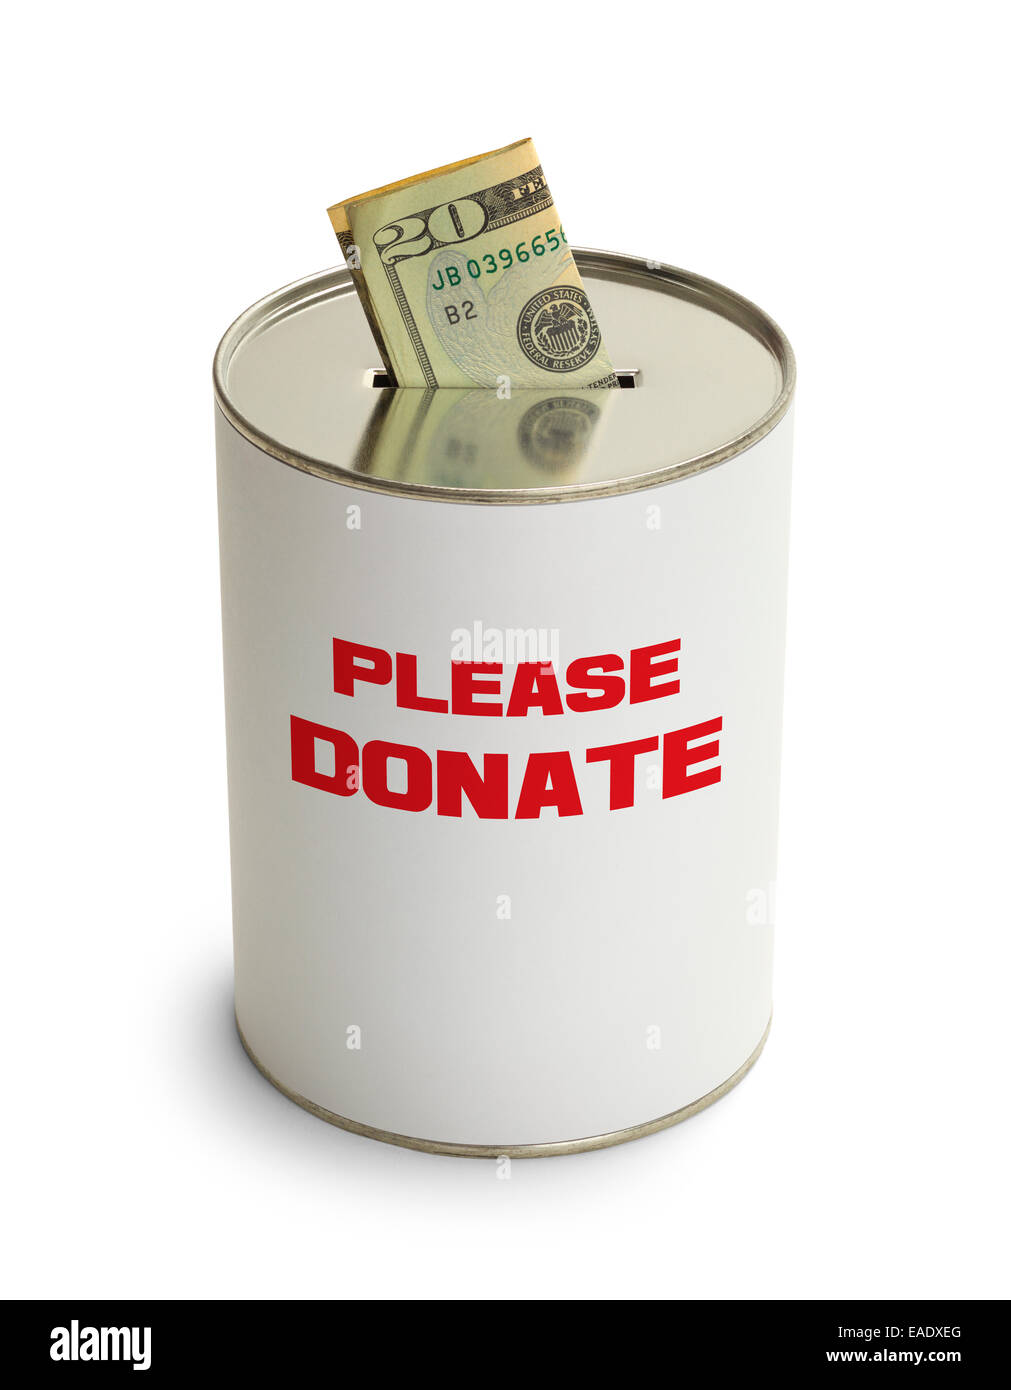 Please Donate Can with Money Isolated on White Background. - Stock Image